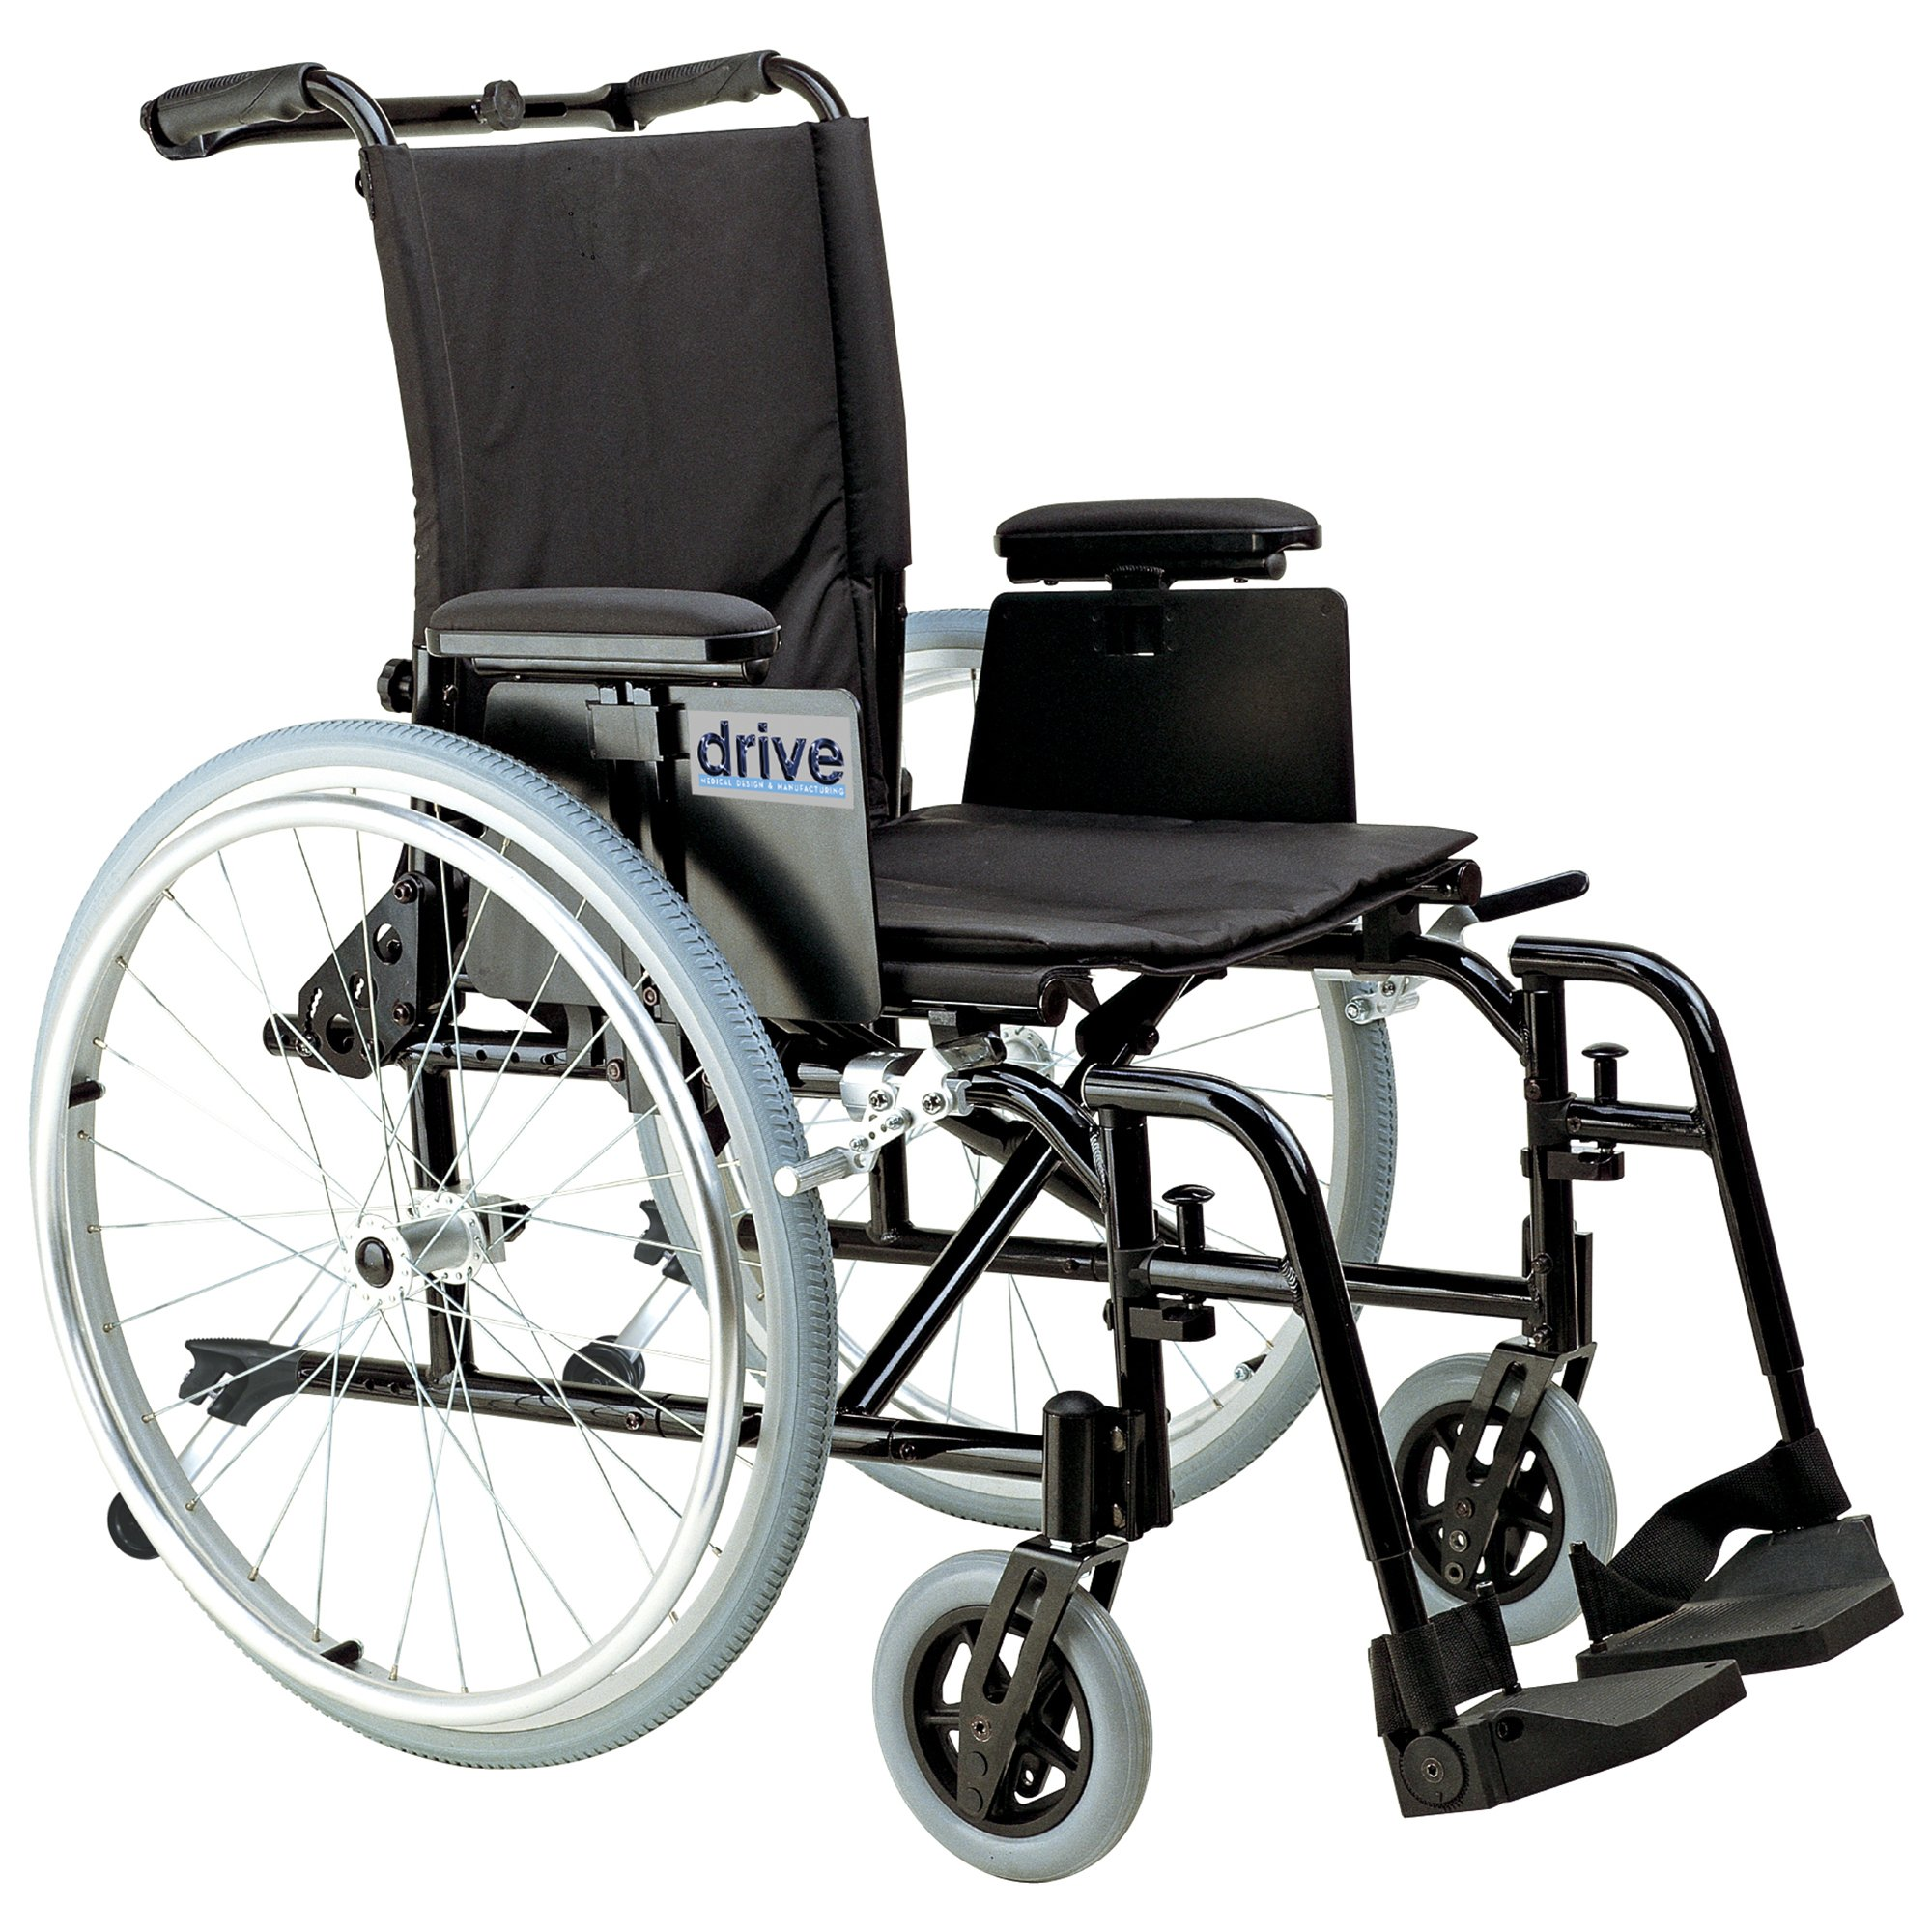 Drive Medical Cougar Ultra Lightweight Rehab Wheelchair with Various Arms Styles and Front Rigging Options, Black, 16''